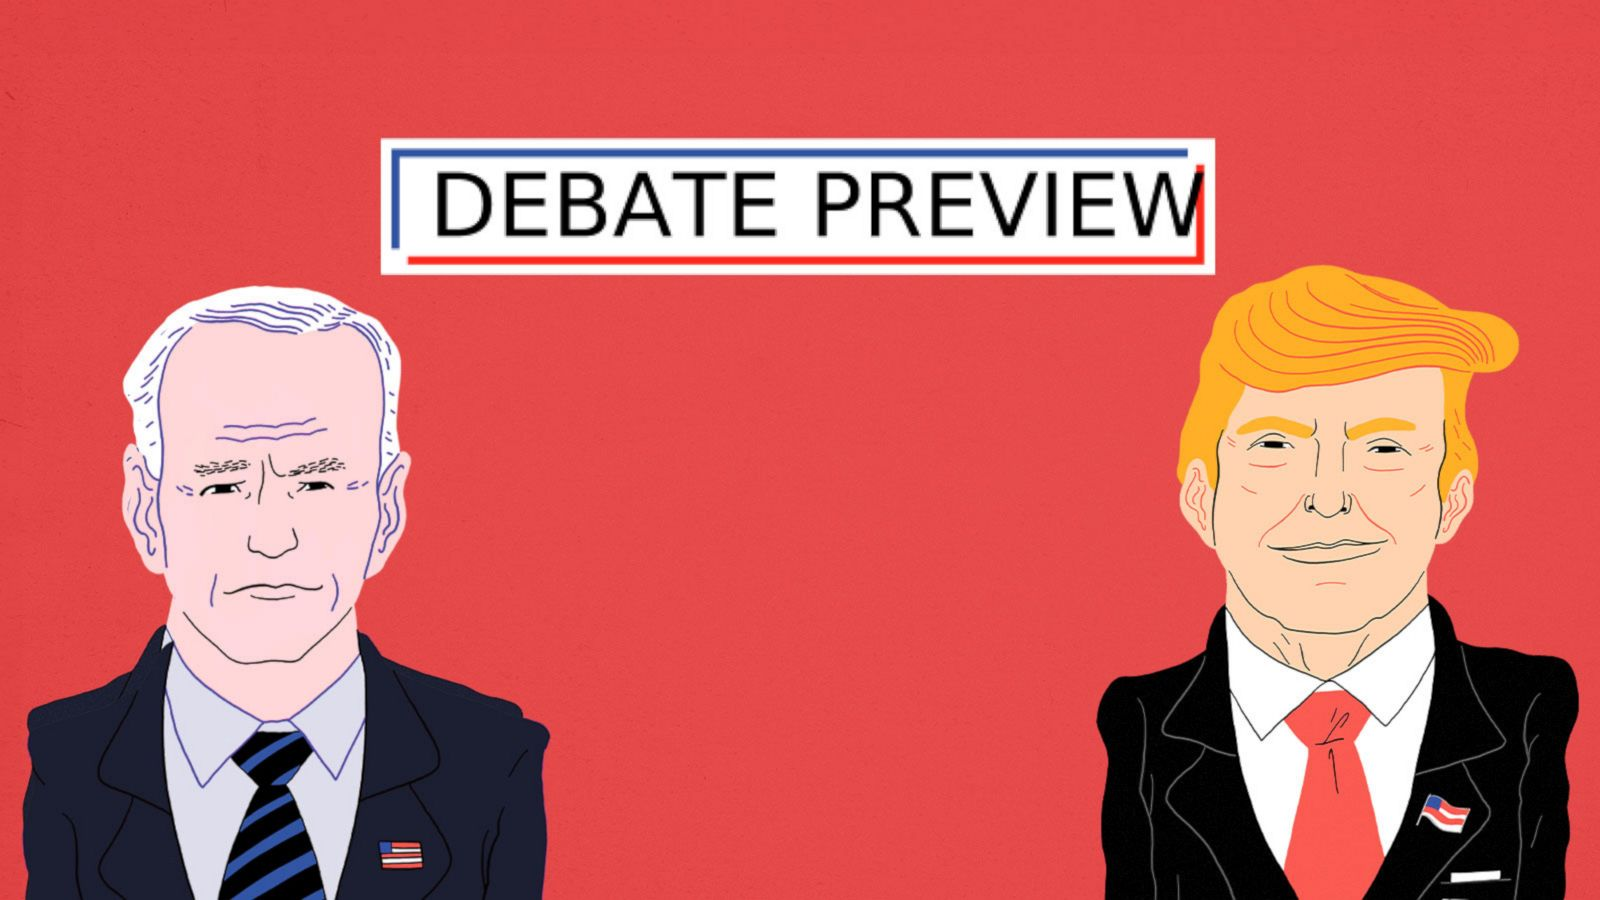 What to watch for during the final presidential debate | FiveThirtyEight